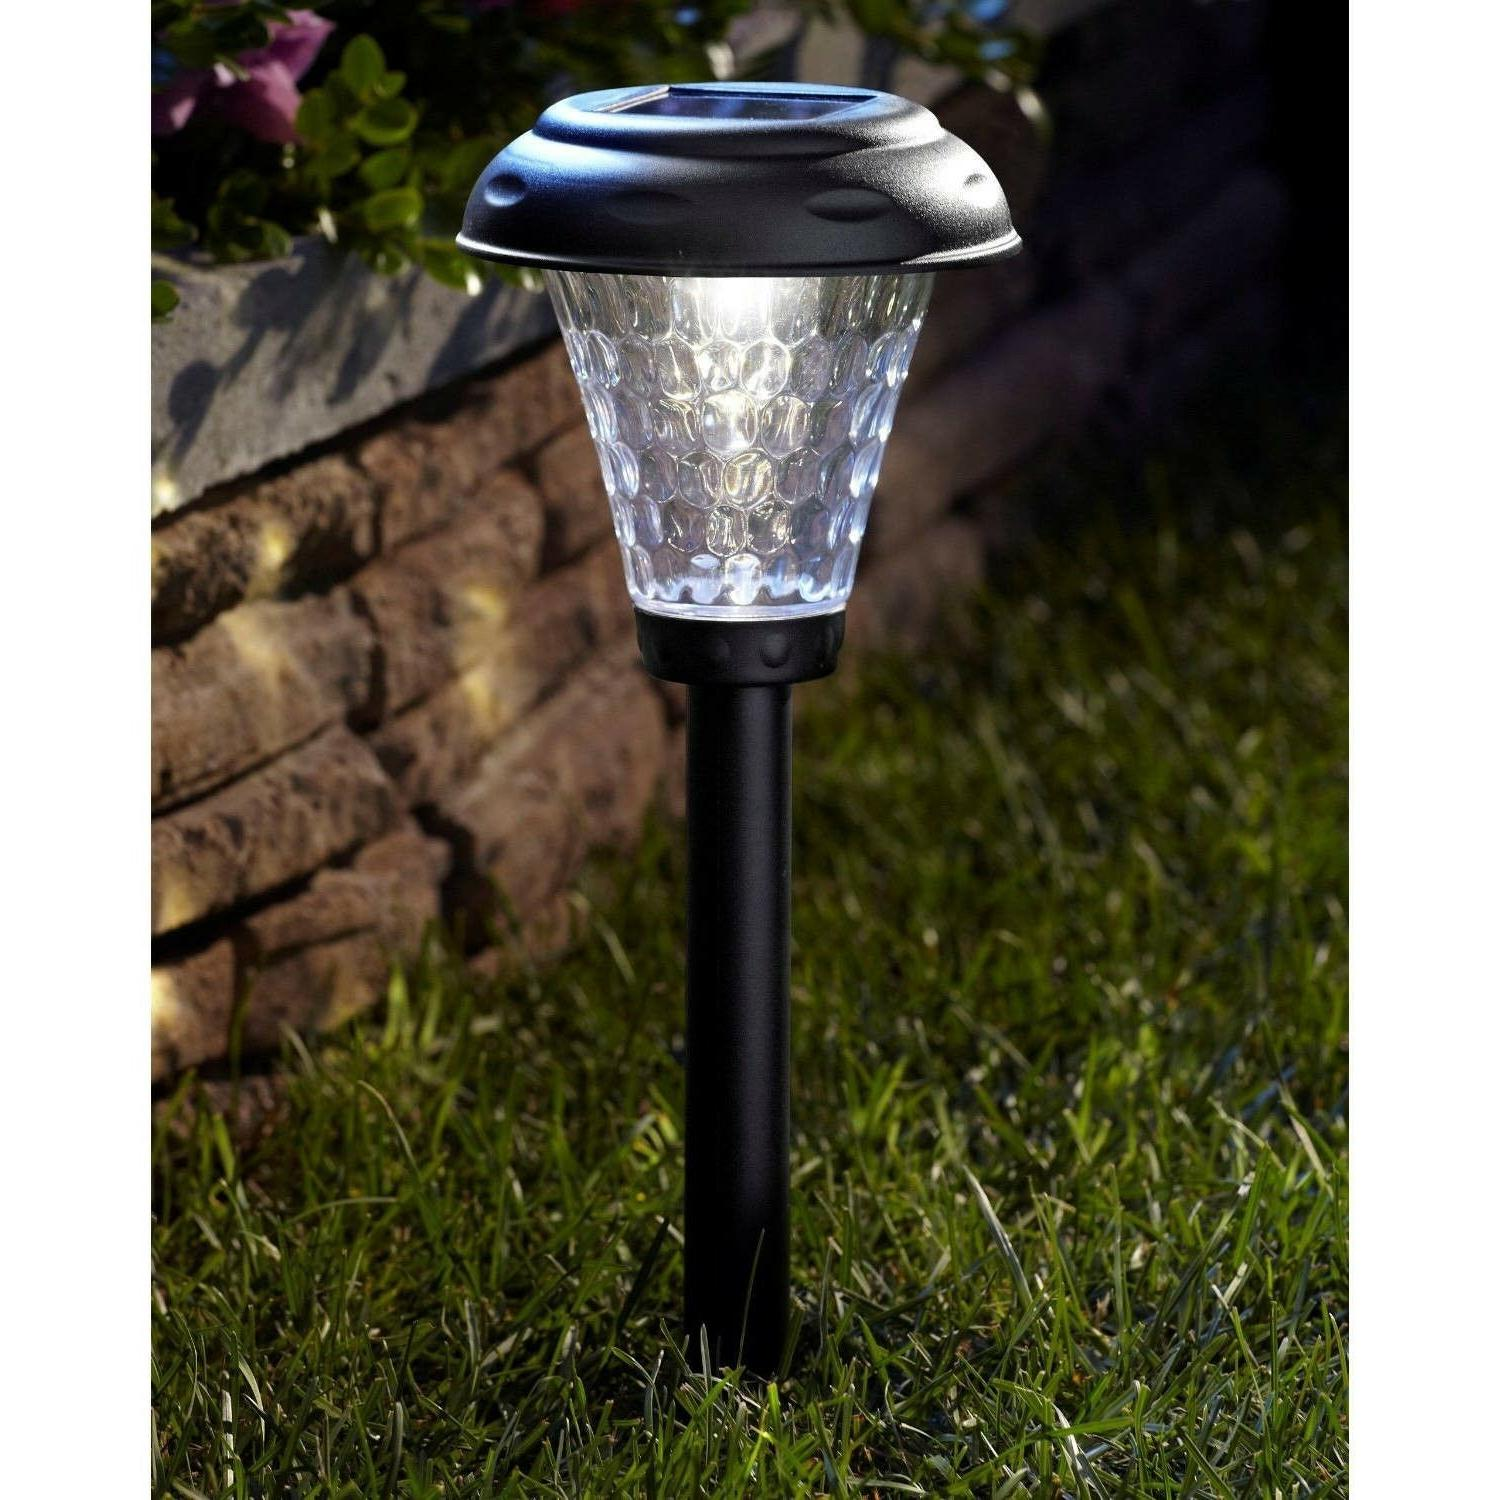 Moonrays 91381 Payton-Style Solar Powered LED Path Lights, S